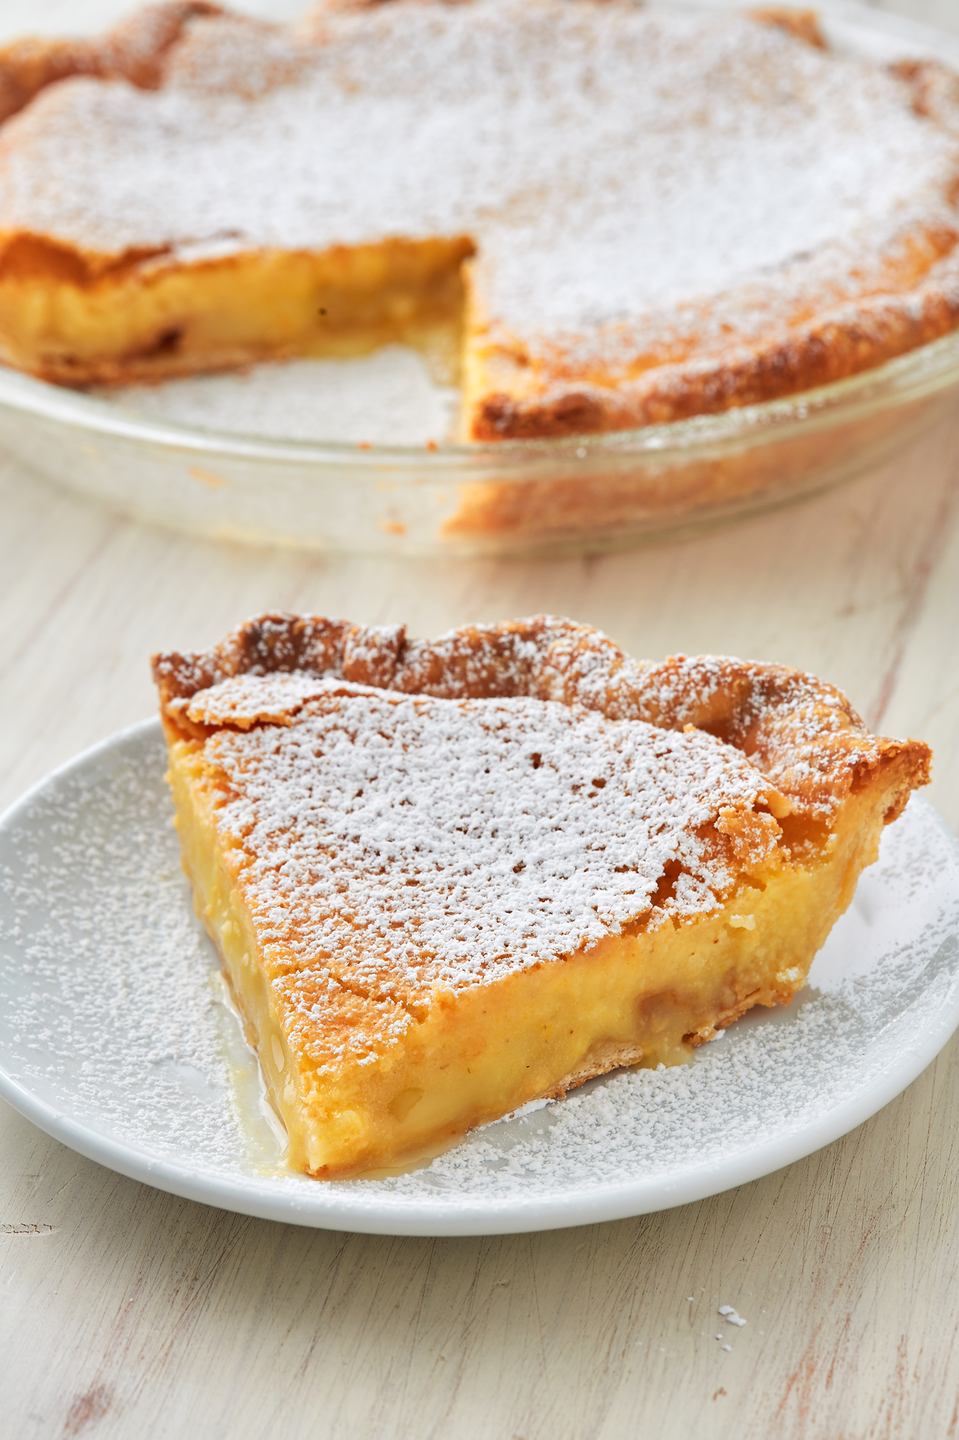 "<p>There's nothing not to love about this custard pie. </p><p>Get the recipe from <a href=""https://www.delish.com/cooking/recipe-ideas/a28439069/chess-pie-recipe/"" rel=""nofollow noopener"" target=""_blank"" data-ylk=""slk:Delish"" class=""link rapid-noclick-resp"">Delish</a>.</p>"